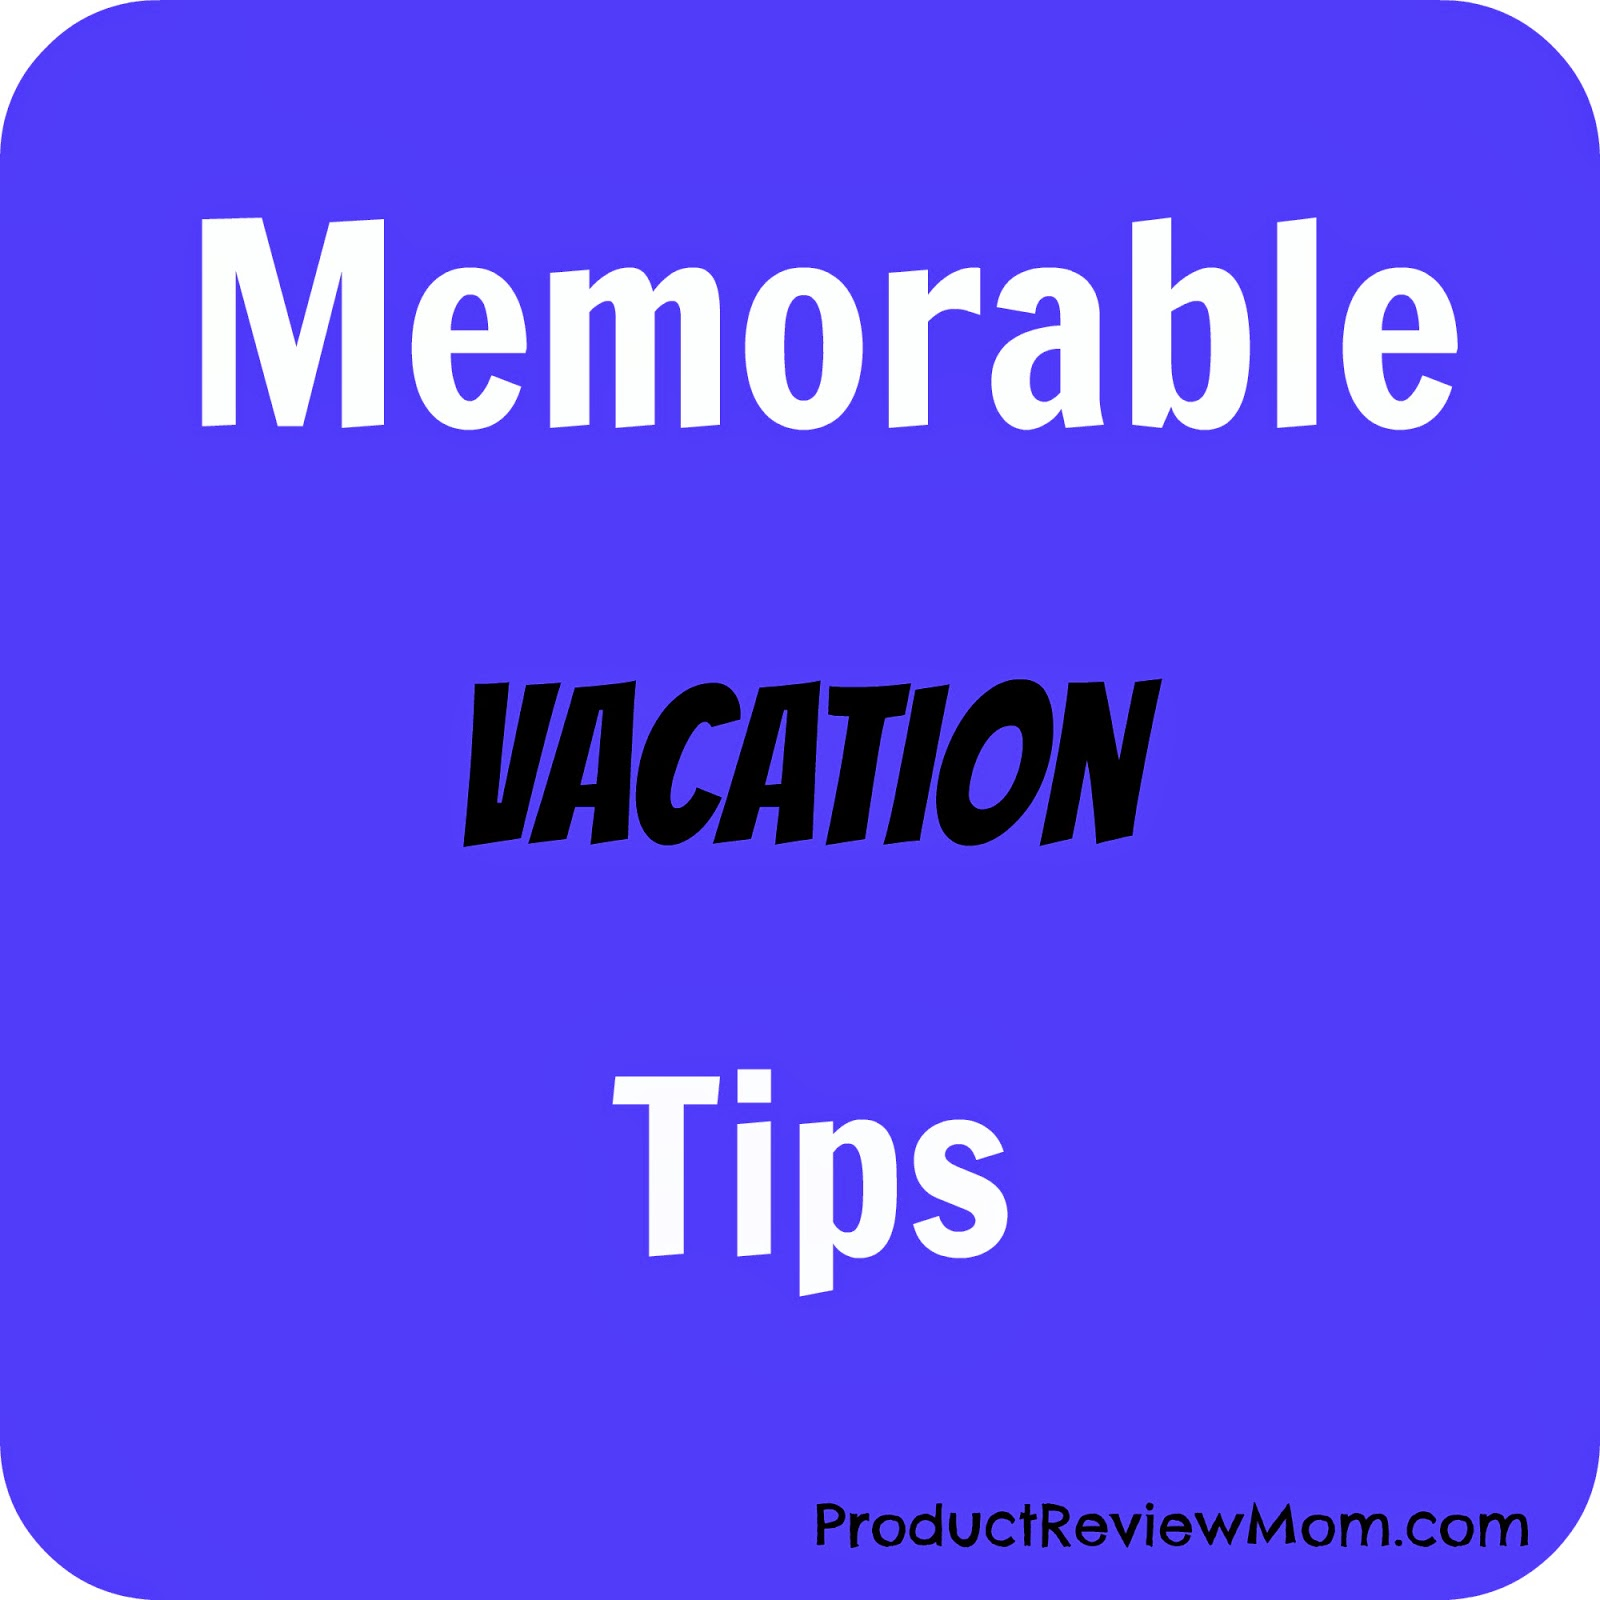 Memorable Vacation Tips via ProductReviewMom.com